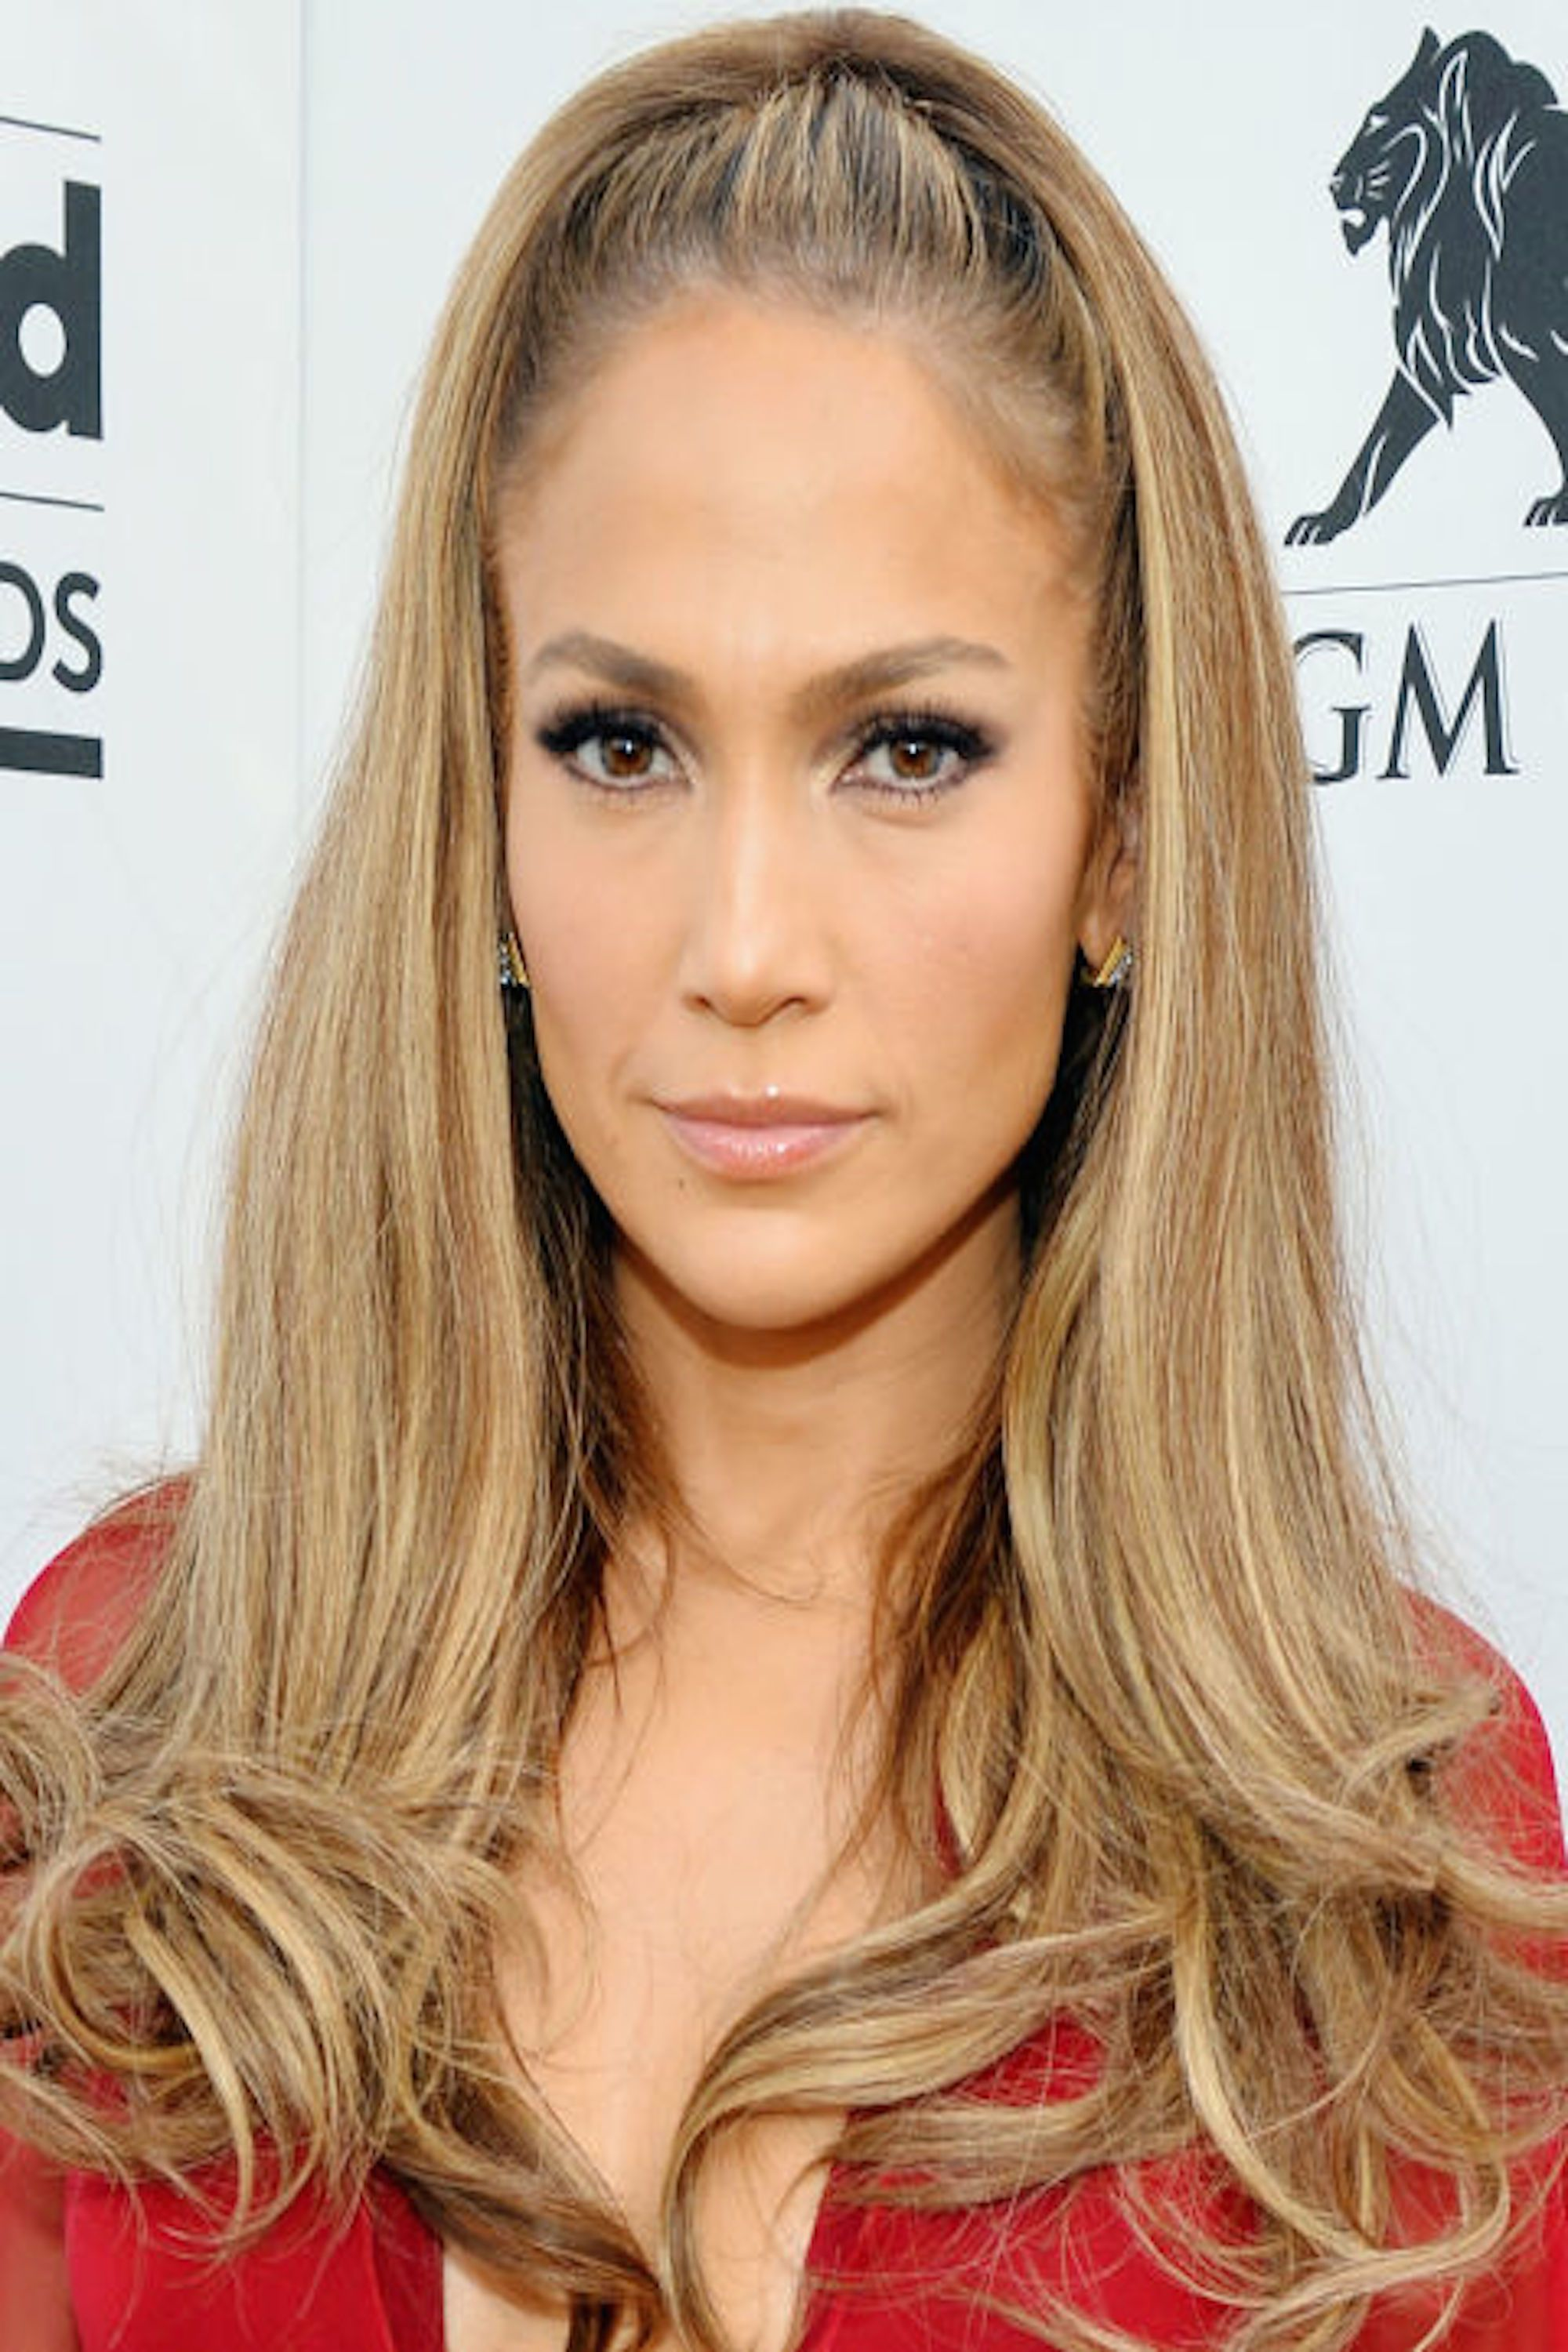 Best Blonde Hair Colors 25 Celebs with Blonde Hair